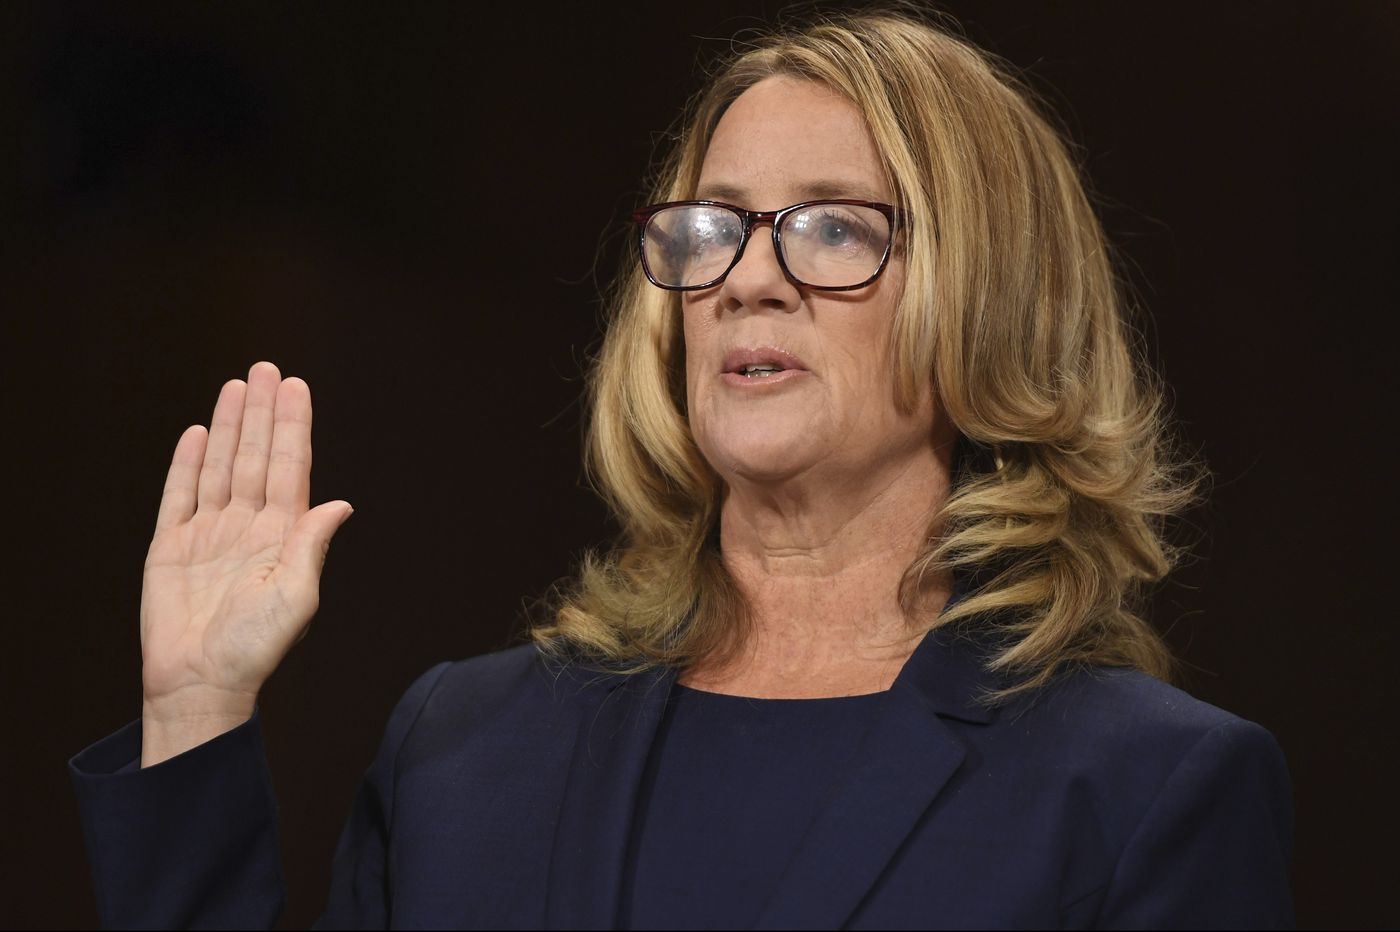 Christine Blasey Ford, Brett Kavanaugh, and the day the laughter stopped for America's privileged | Will Bunch